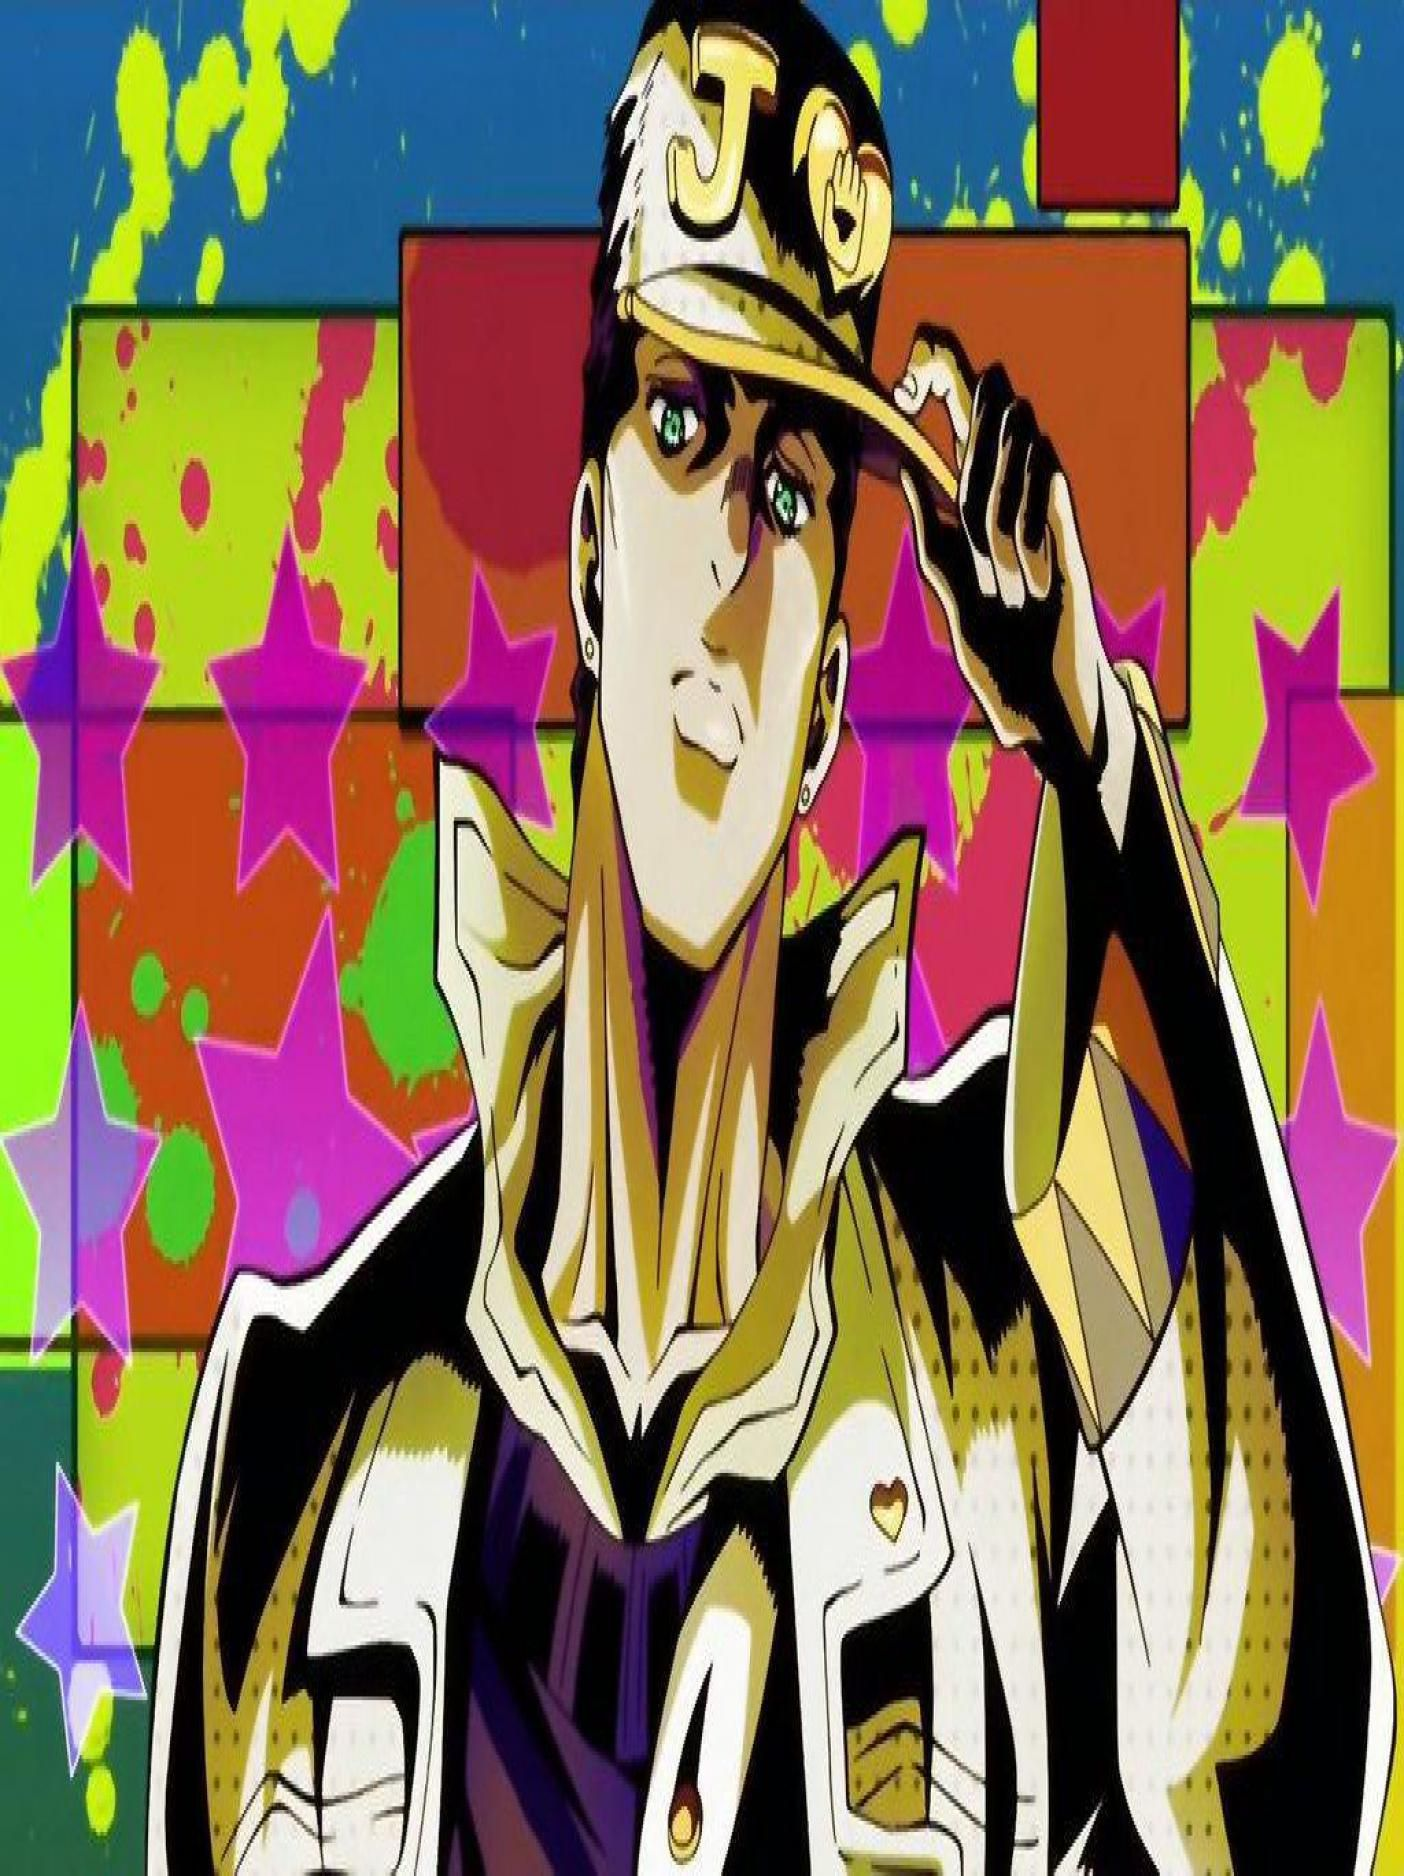 JoJo's Bizarre Adventure What's the Right Watch Order for